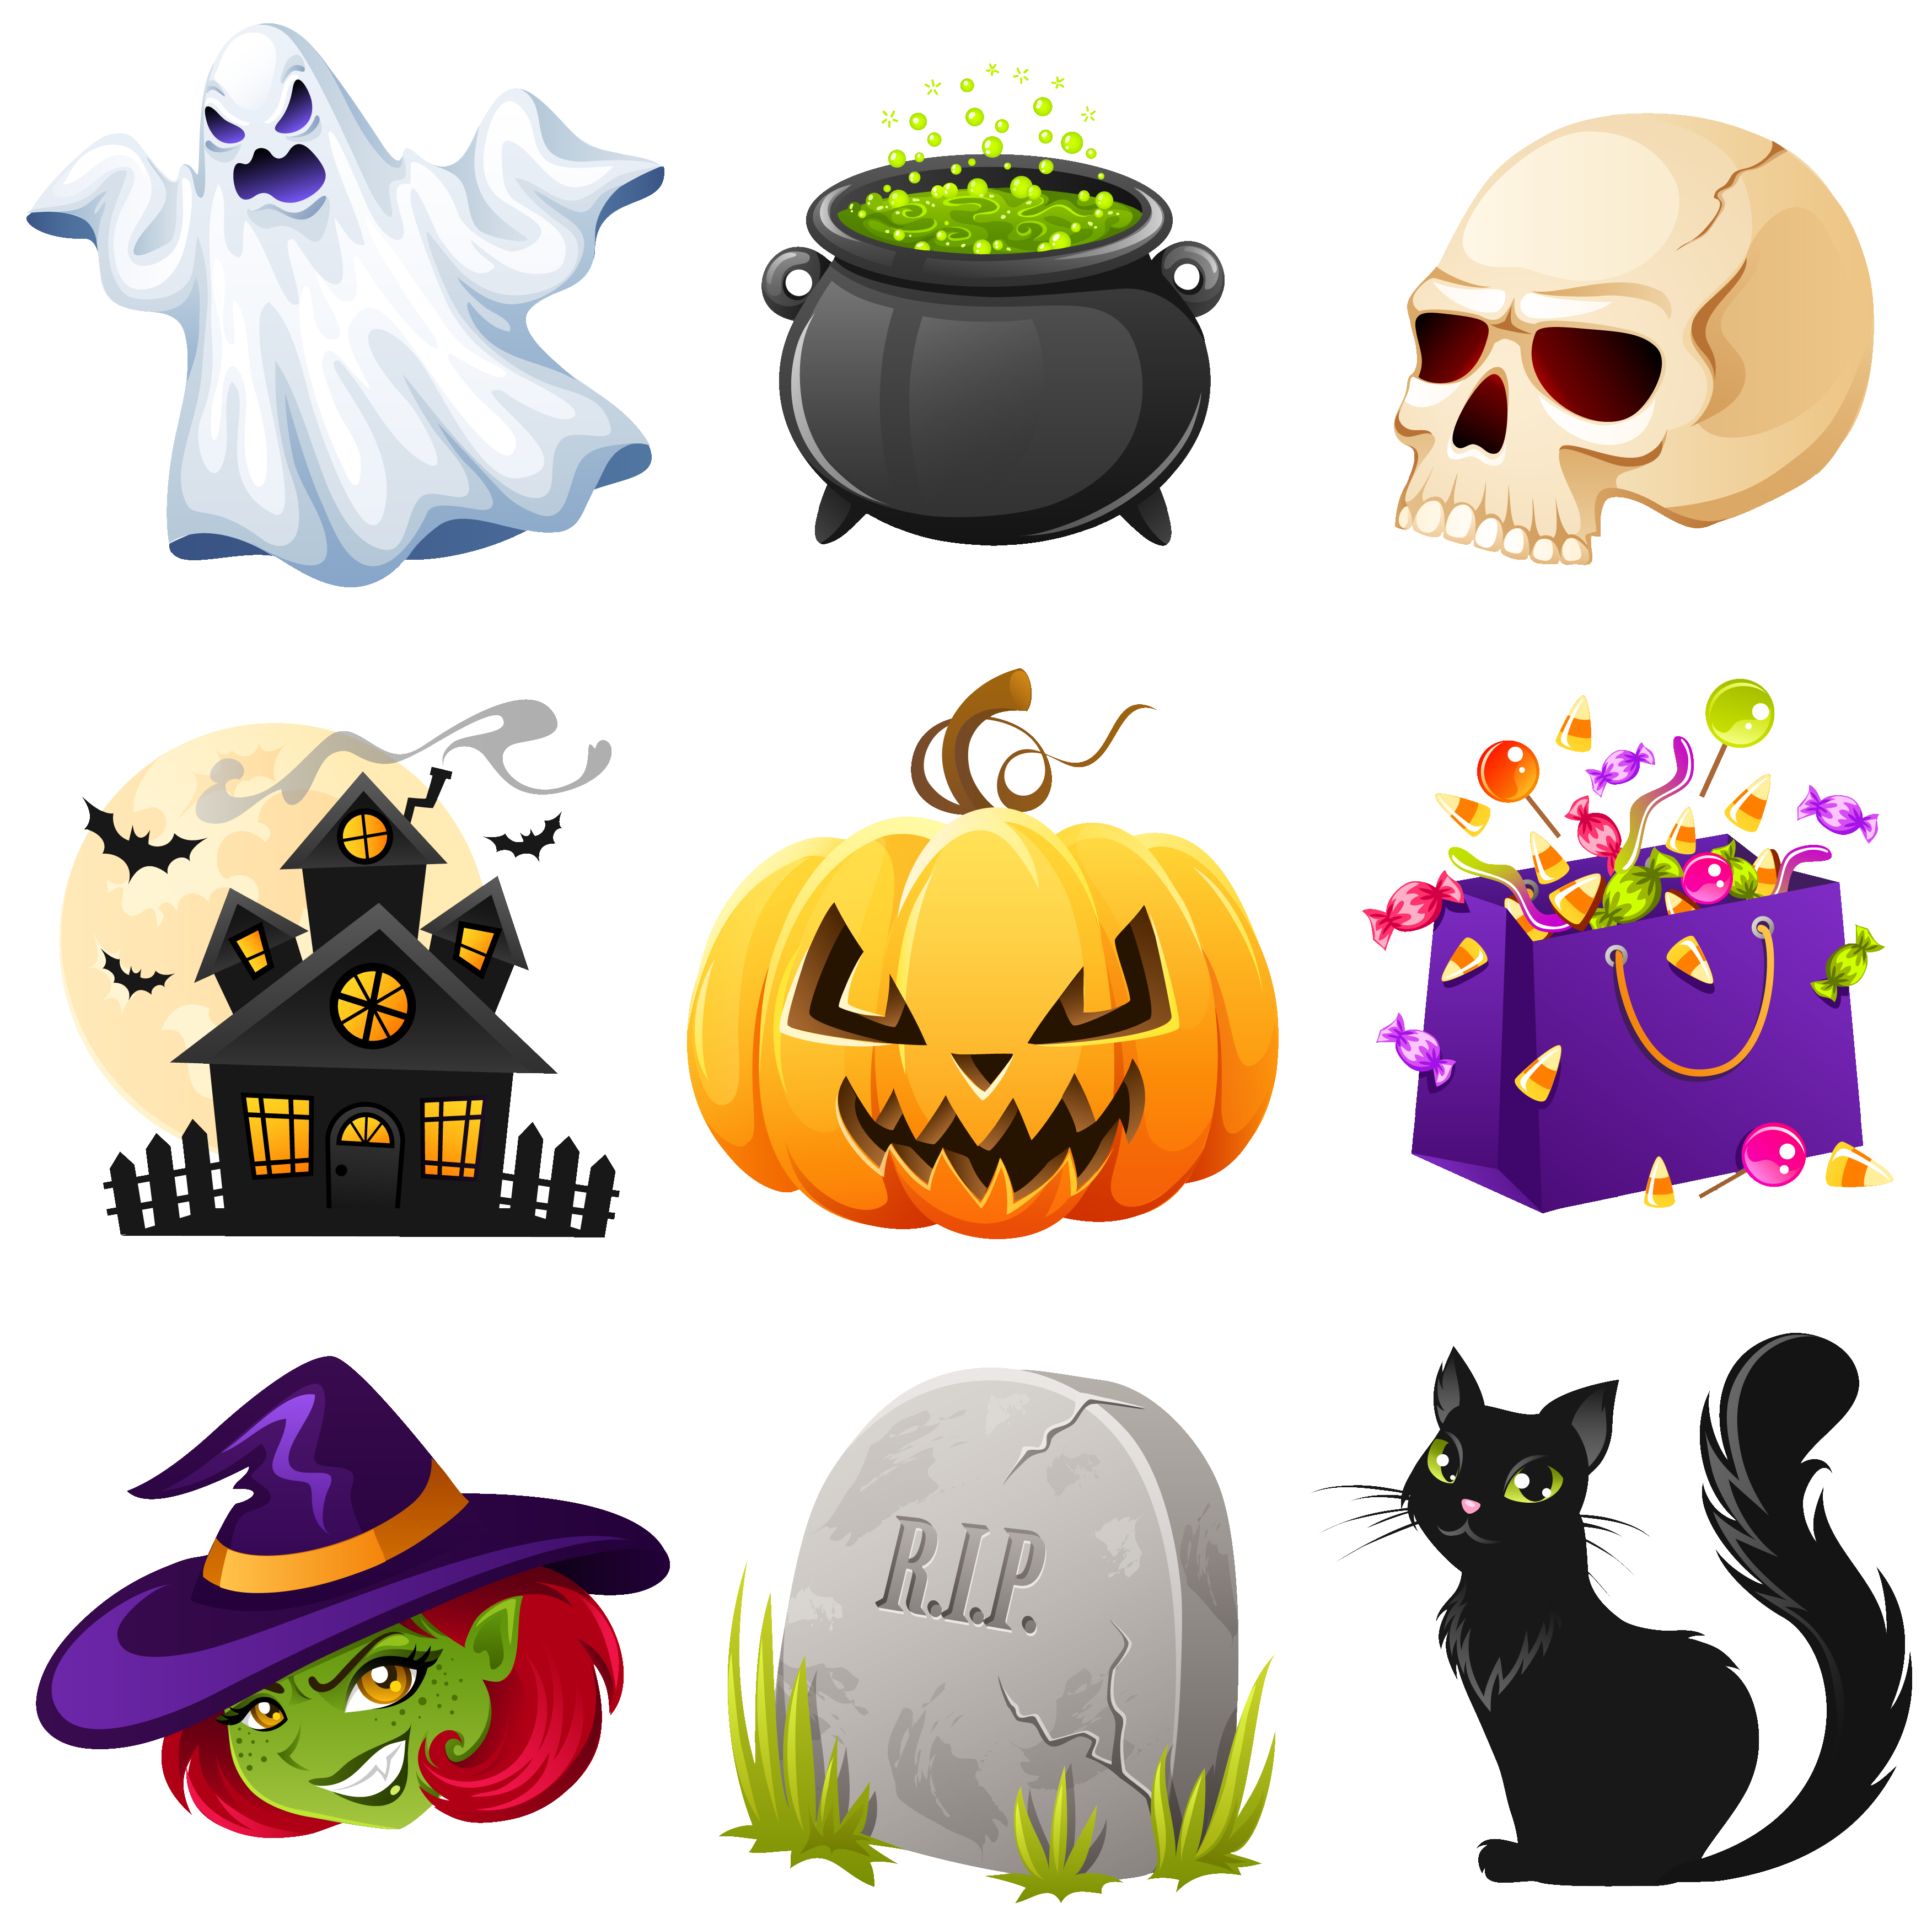 Free halloween costume clipart graphic black and white library Halloween PNG Creepy Clipart Pictures Collection | Gallery ... graphic black and white library